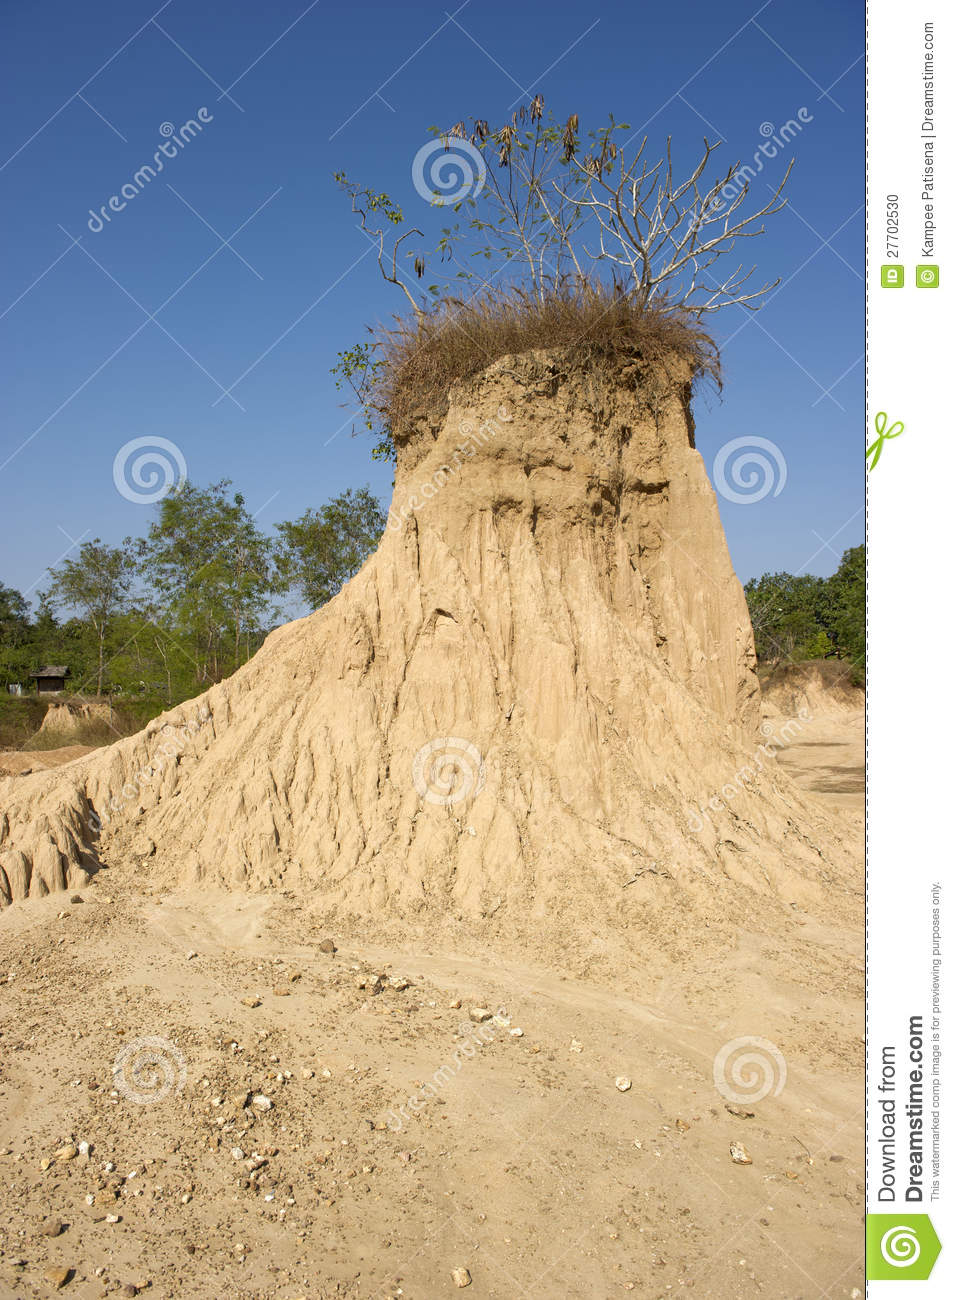 Soil Erosion Of Rain And Wind Stock Photo - Image of cones ...